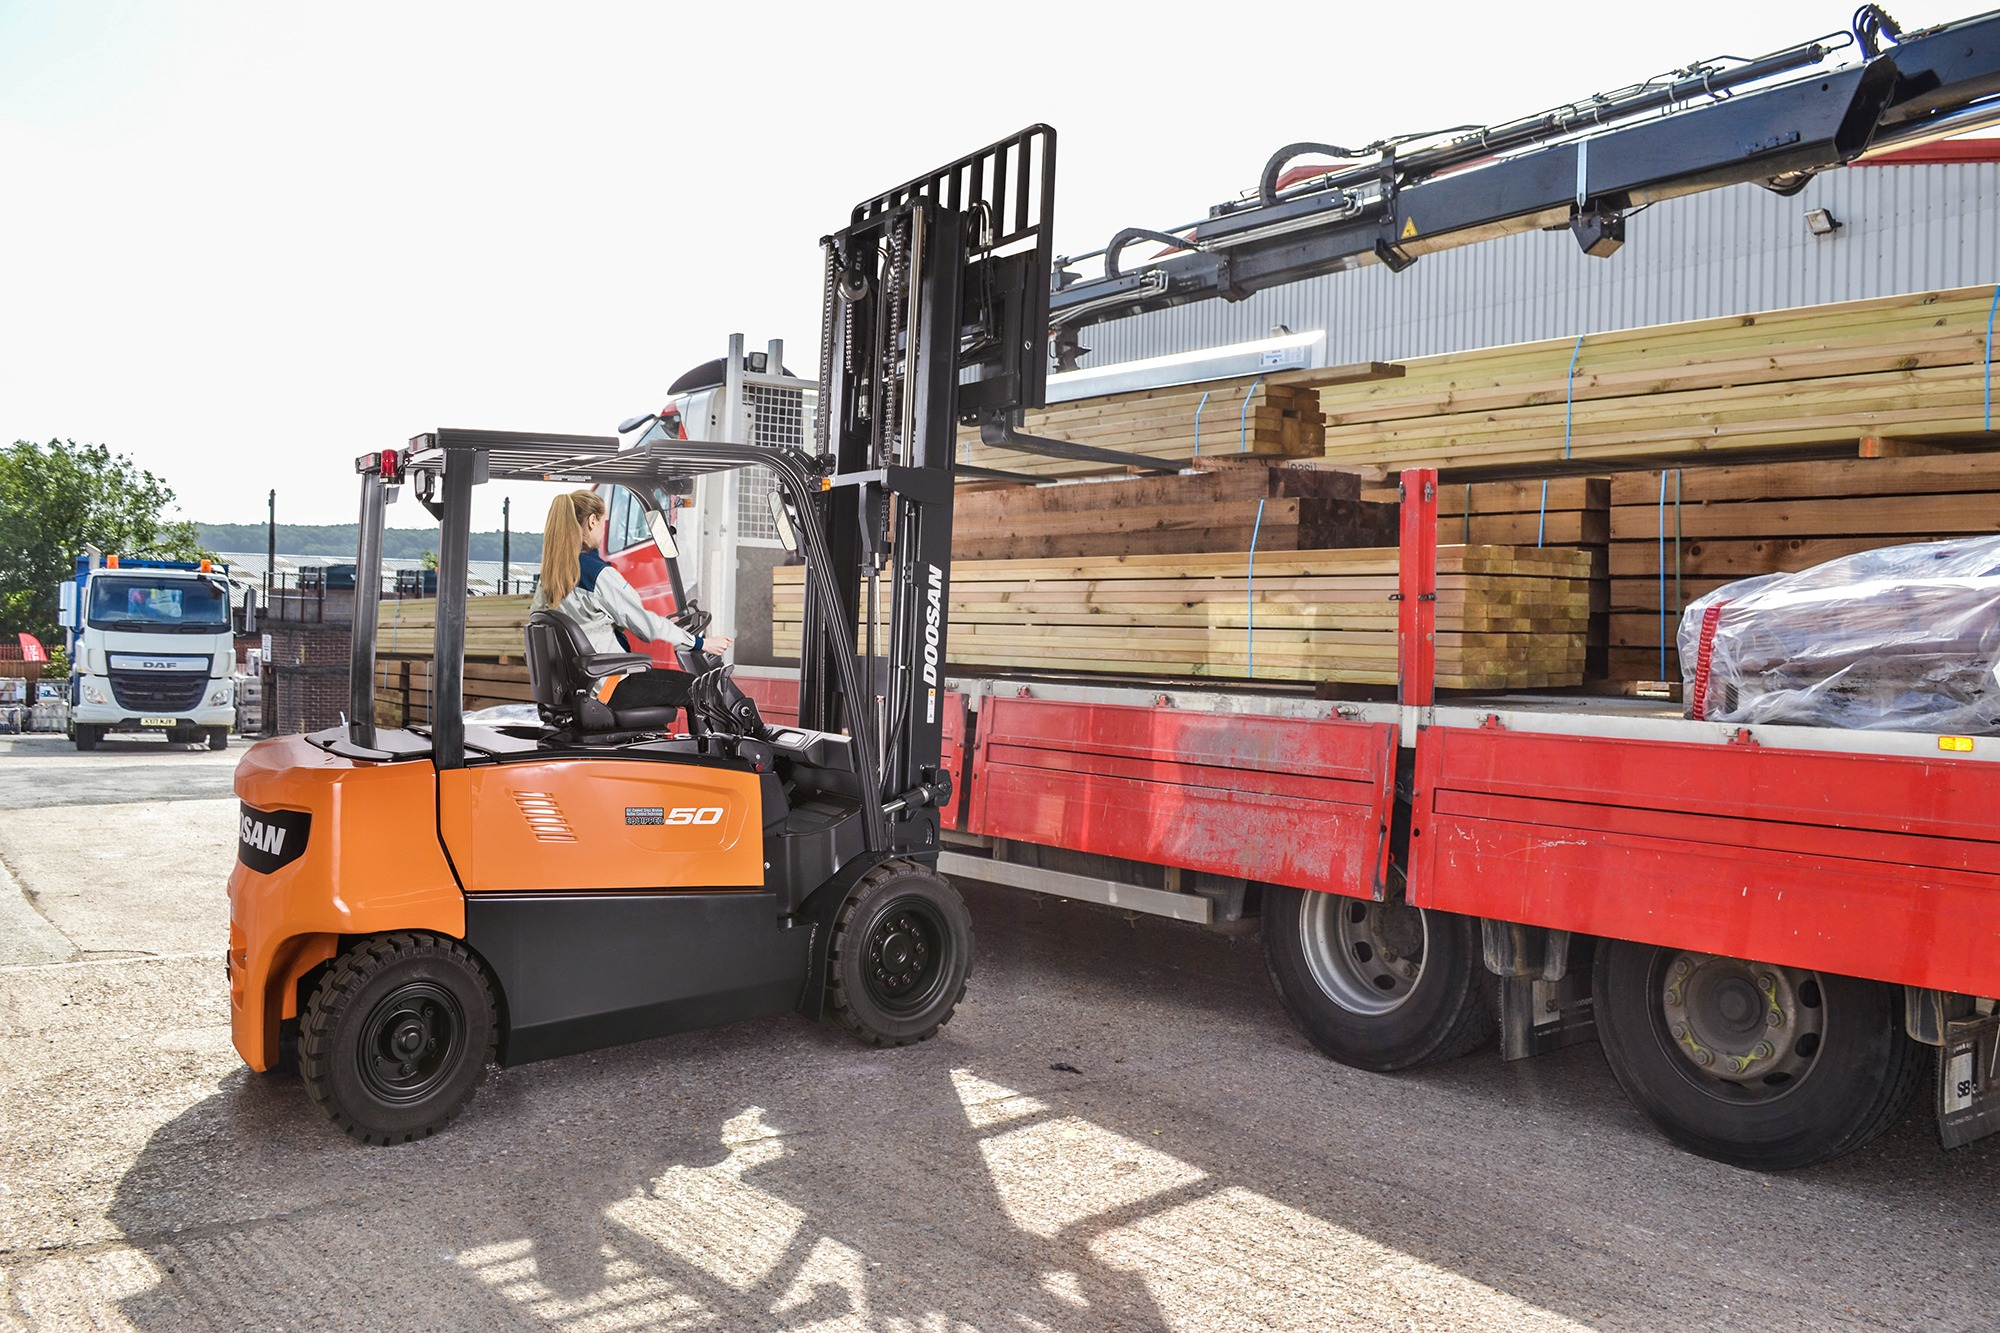 5.0 tonne electric forklift